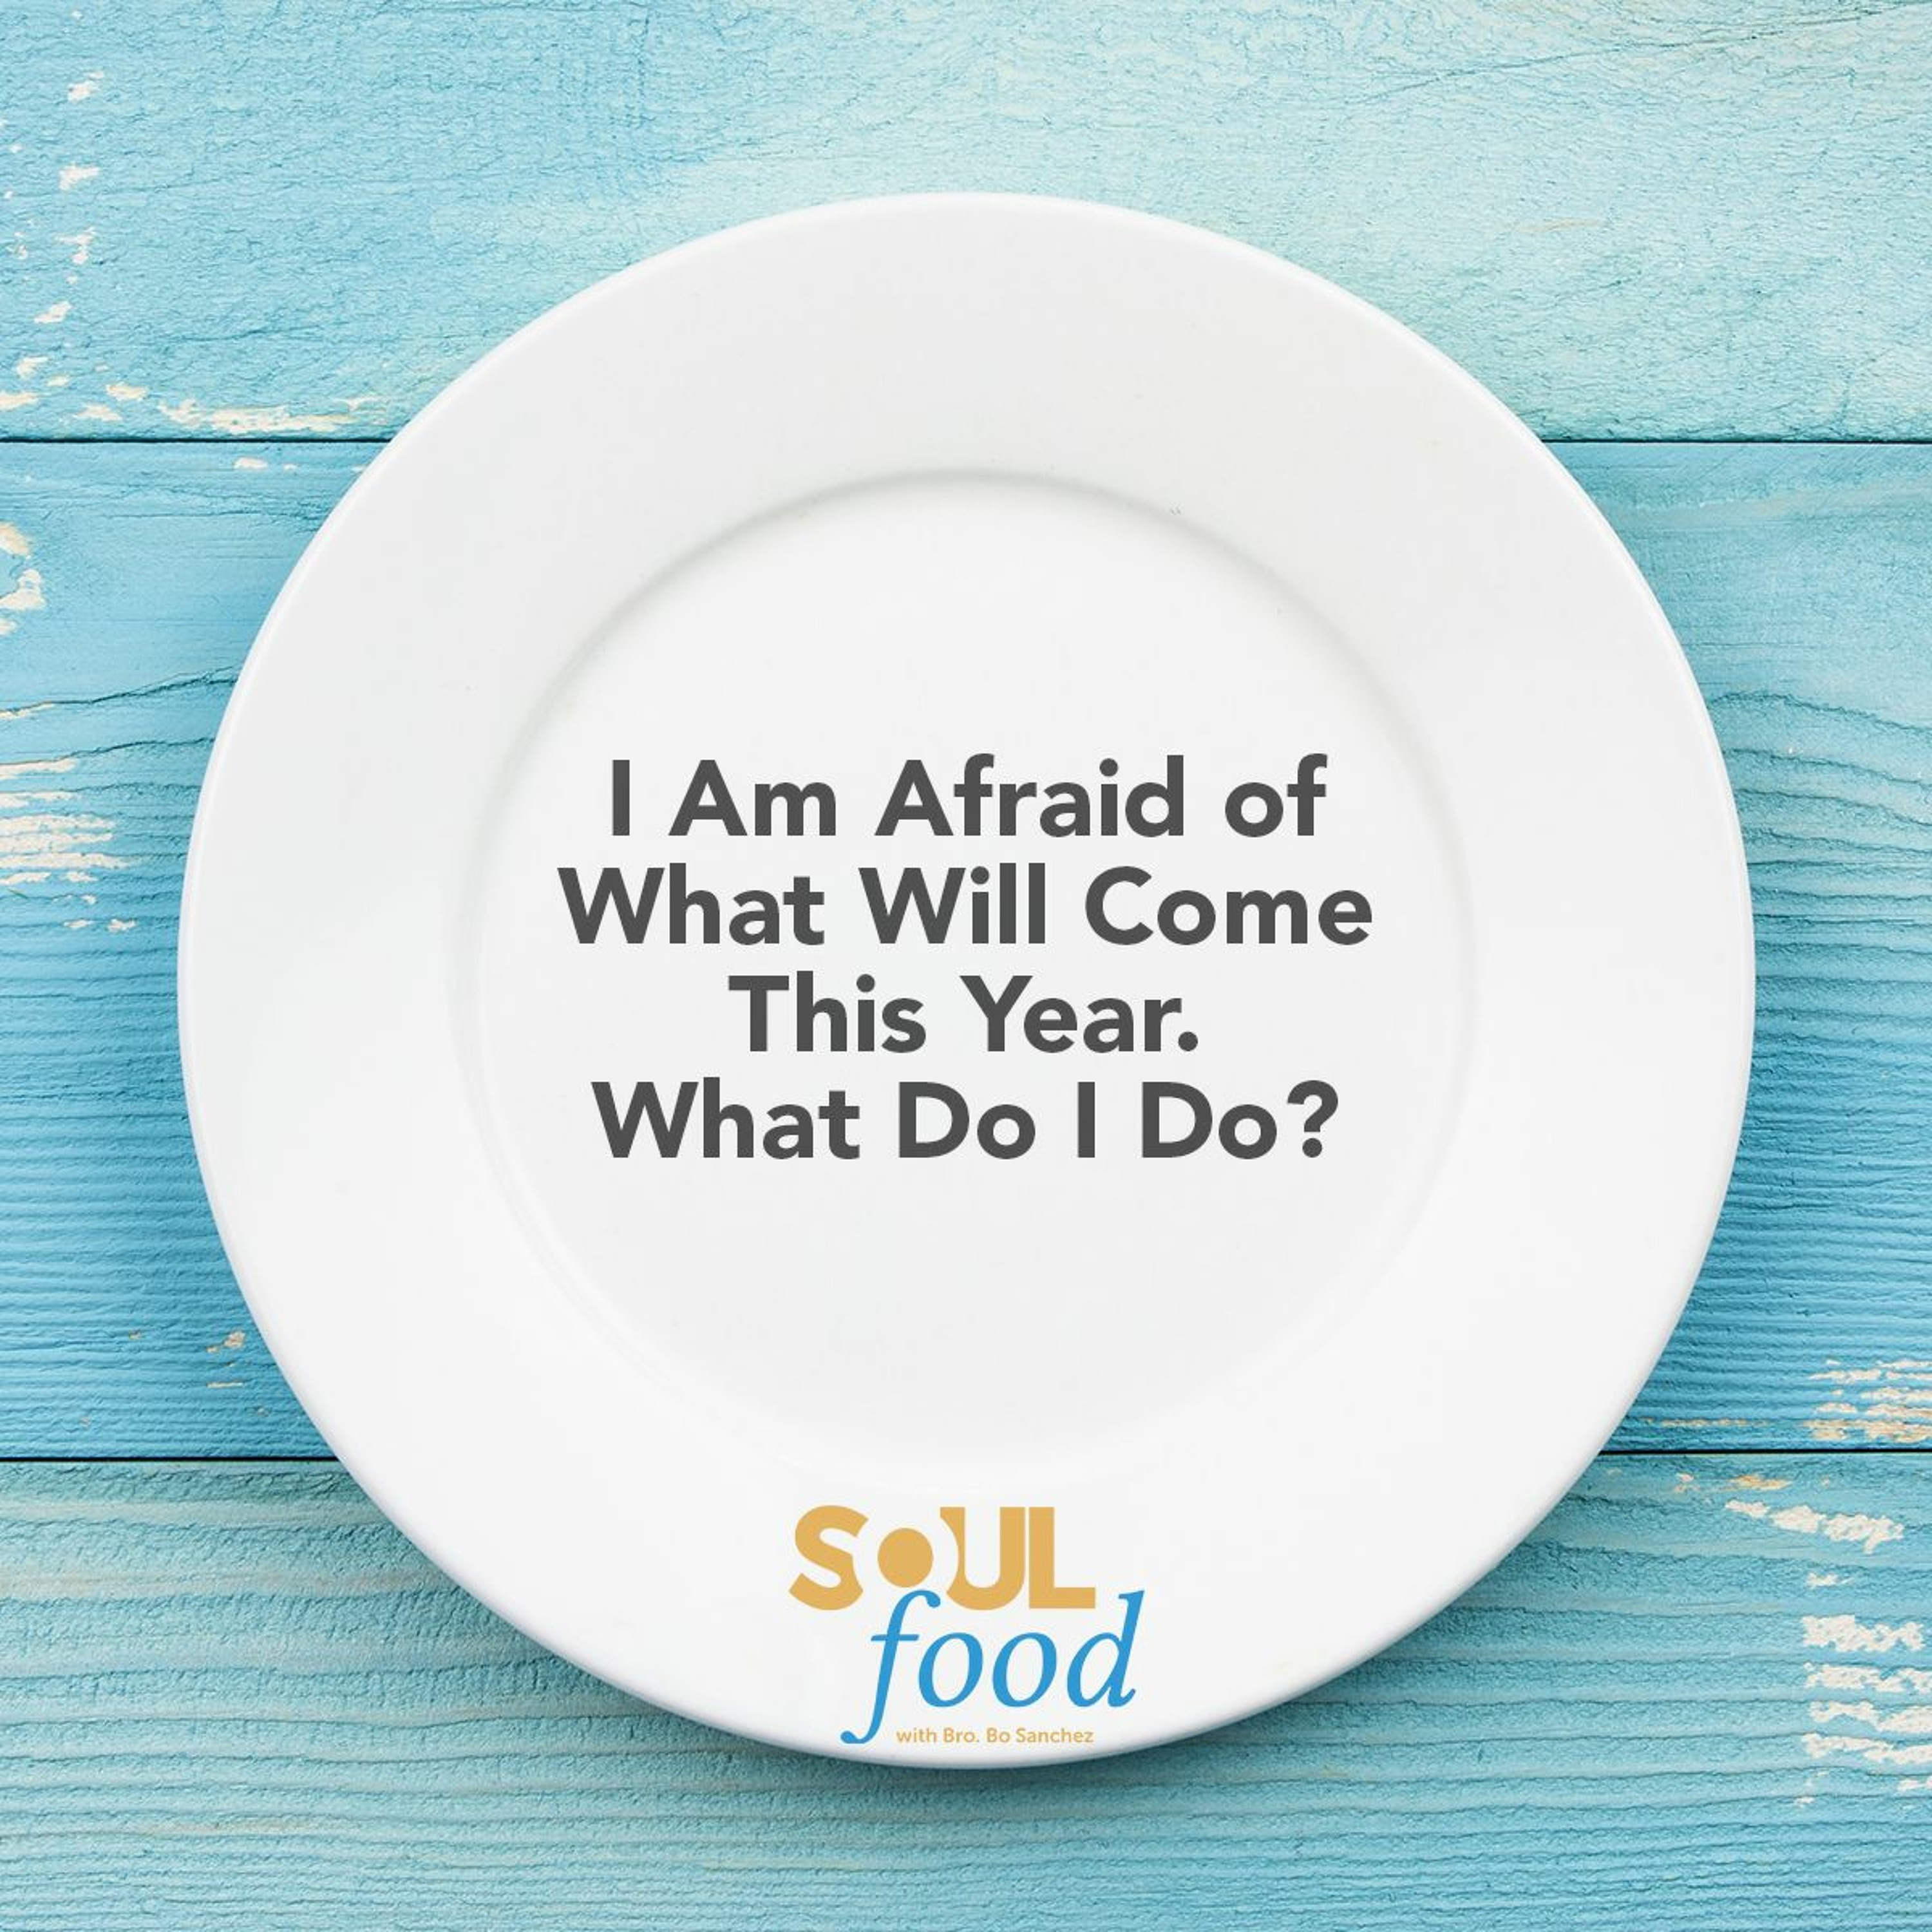 Soul Food S01E34 I'm afraid of what may come this year. What do I do?